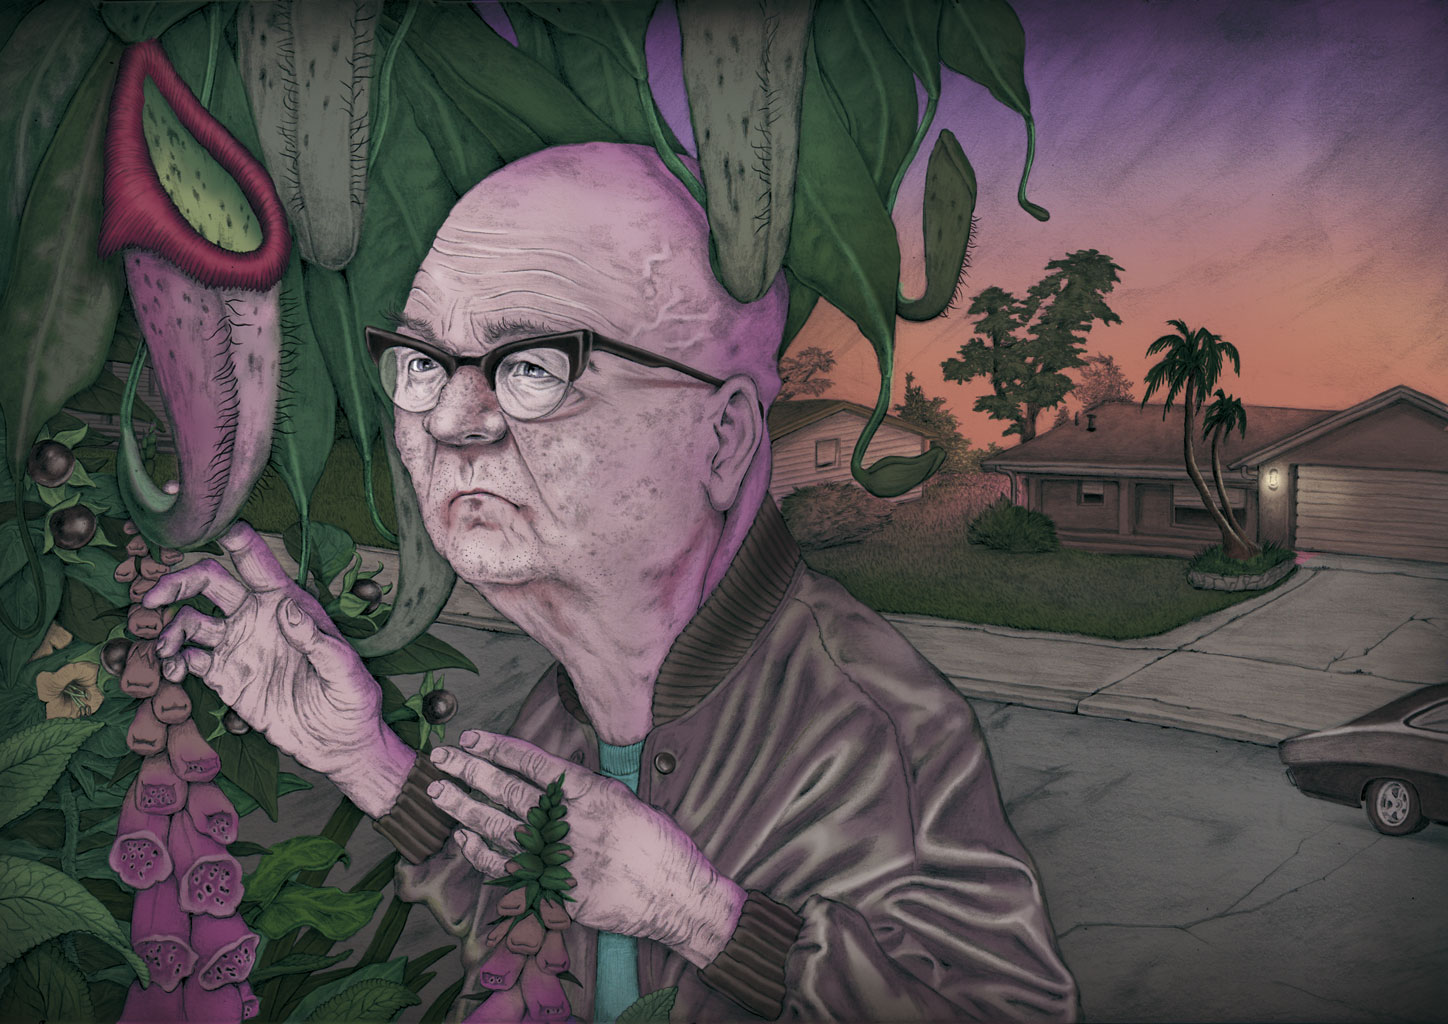 illustration, illustrations, illustrator, illustrators, man, men, gradient, sunrise, sunset, suburban, suburbs, neighbor, spy, spying, sneak, sneaking, palm tree, palm trees, car, cars, house, houses, streetlight, streetlamp, street, streets, plant, plants, flower, flowers, ivy, elderly, adult, glasses, bald, hand, hands, jacket